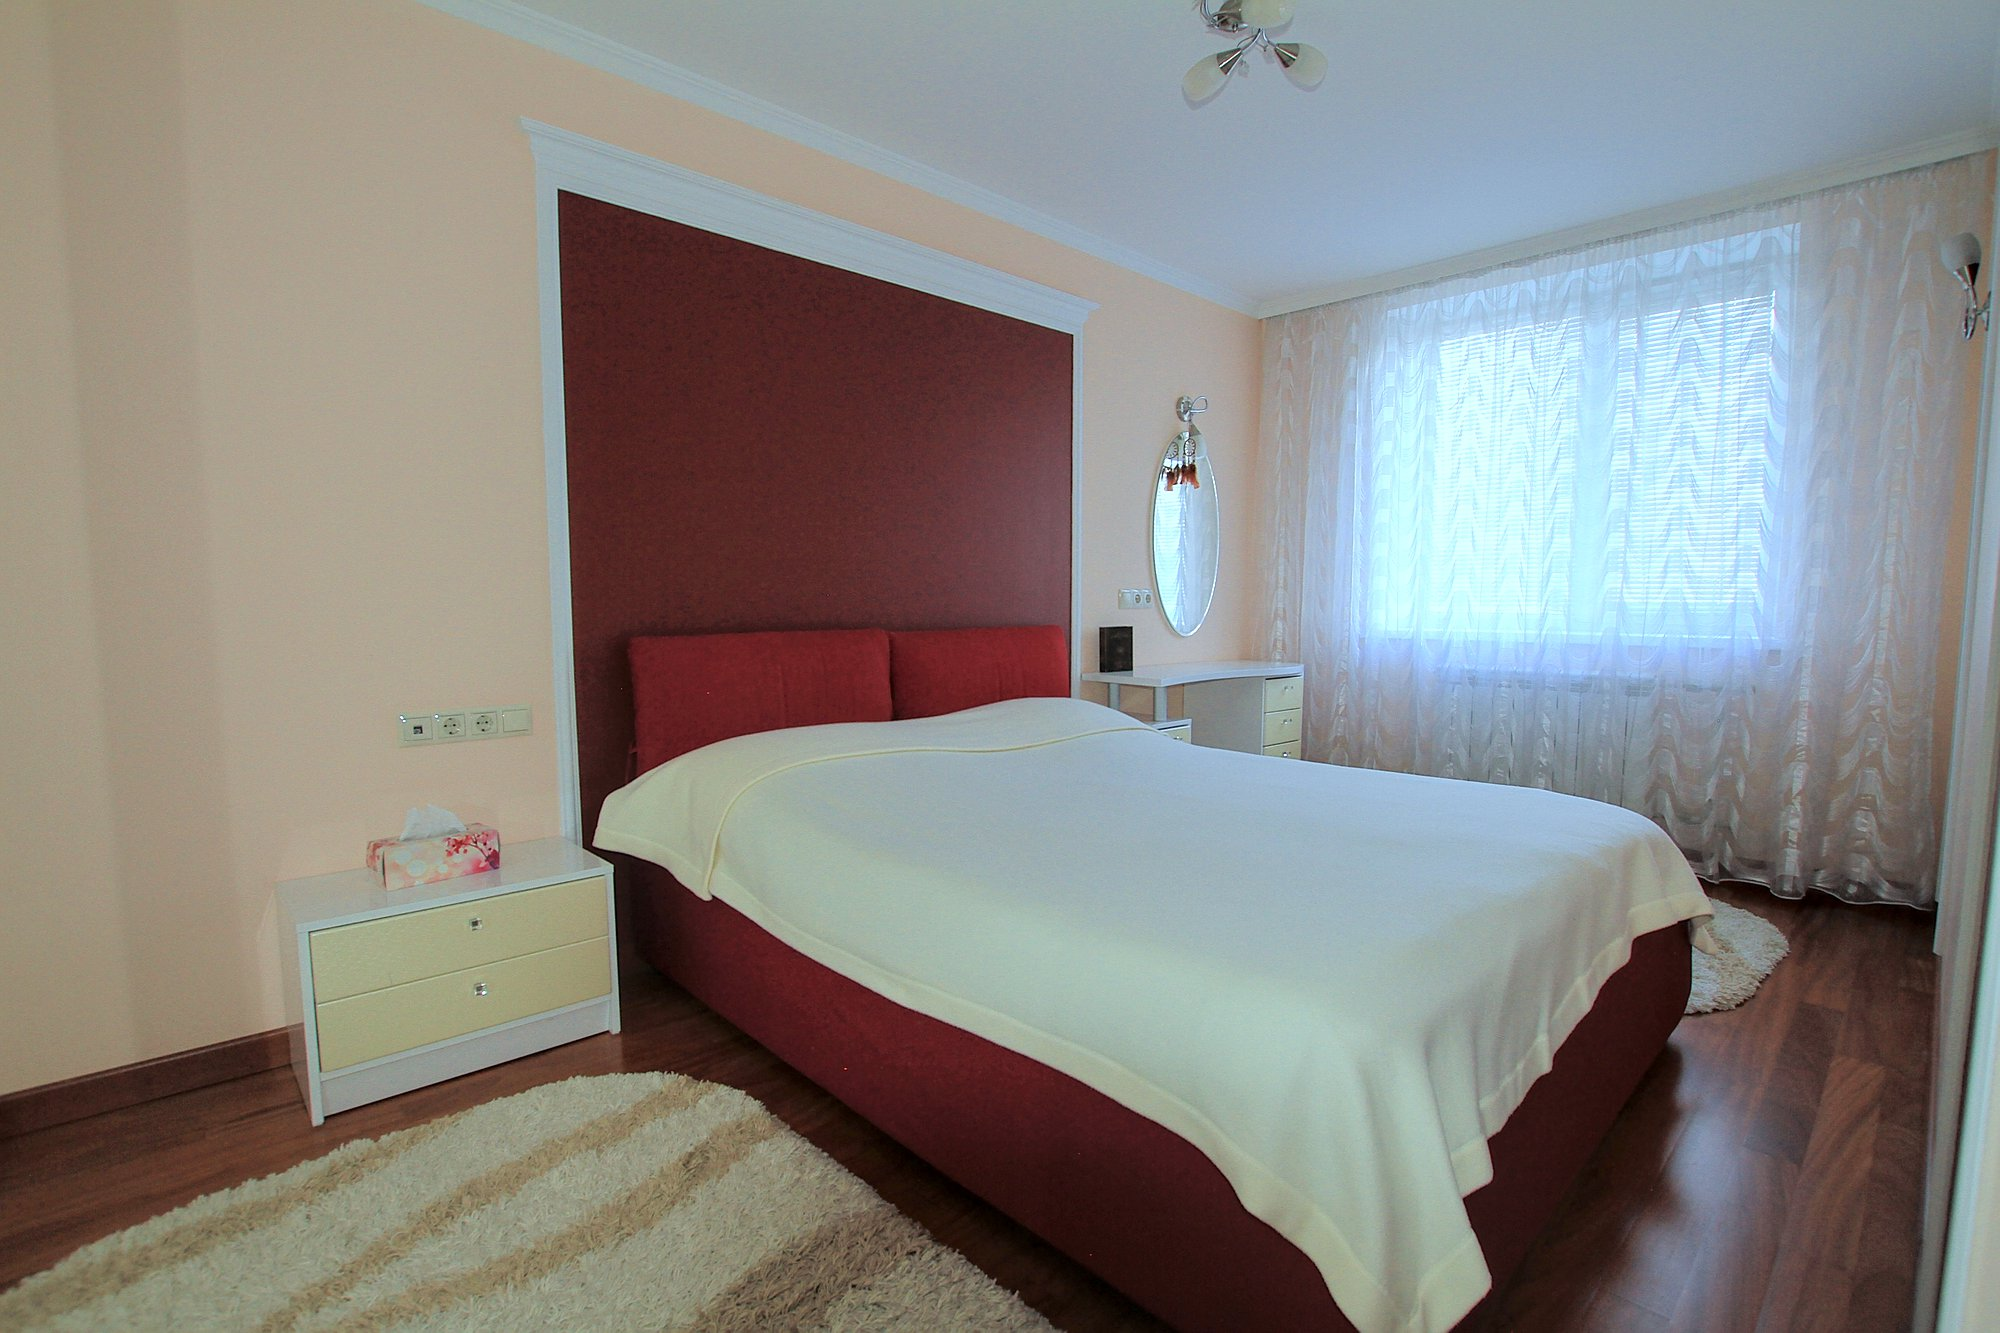 A-40-3-room-apartment-for-rent-in-Chisinau-Botanica_10.jpg